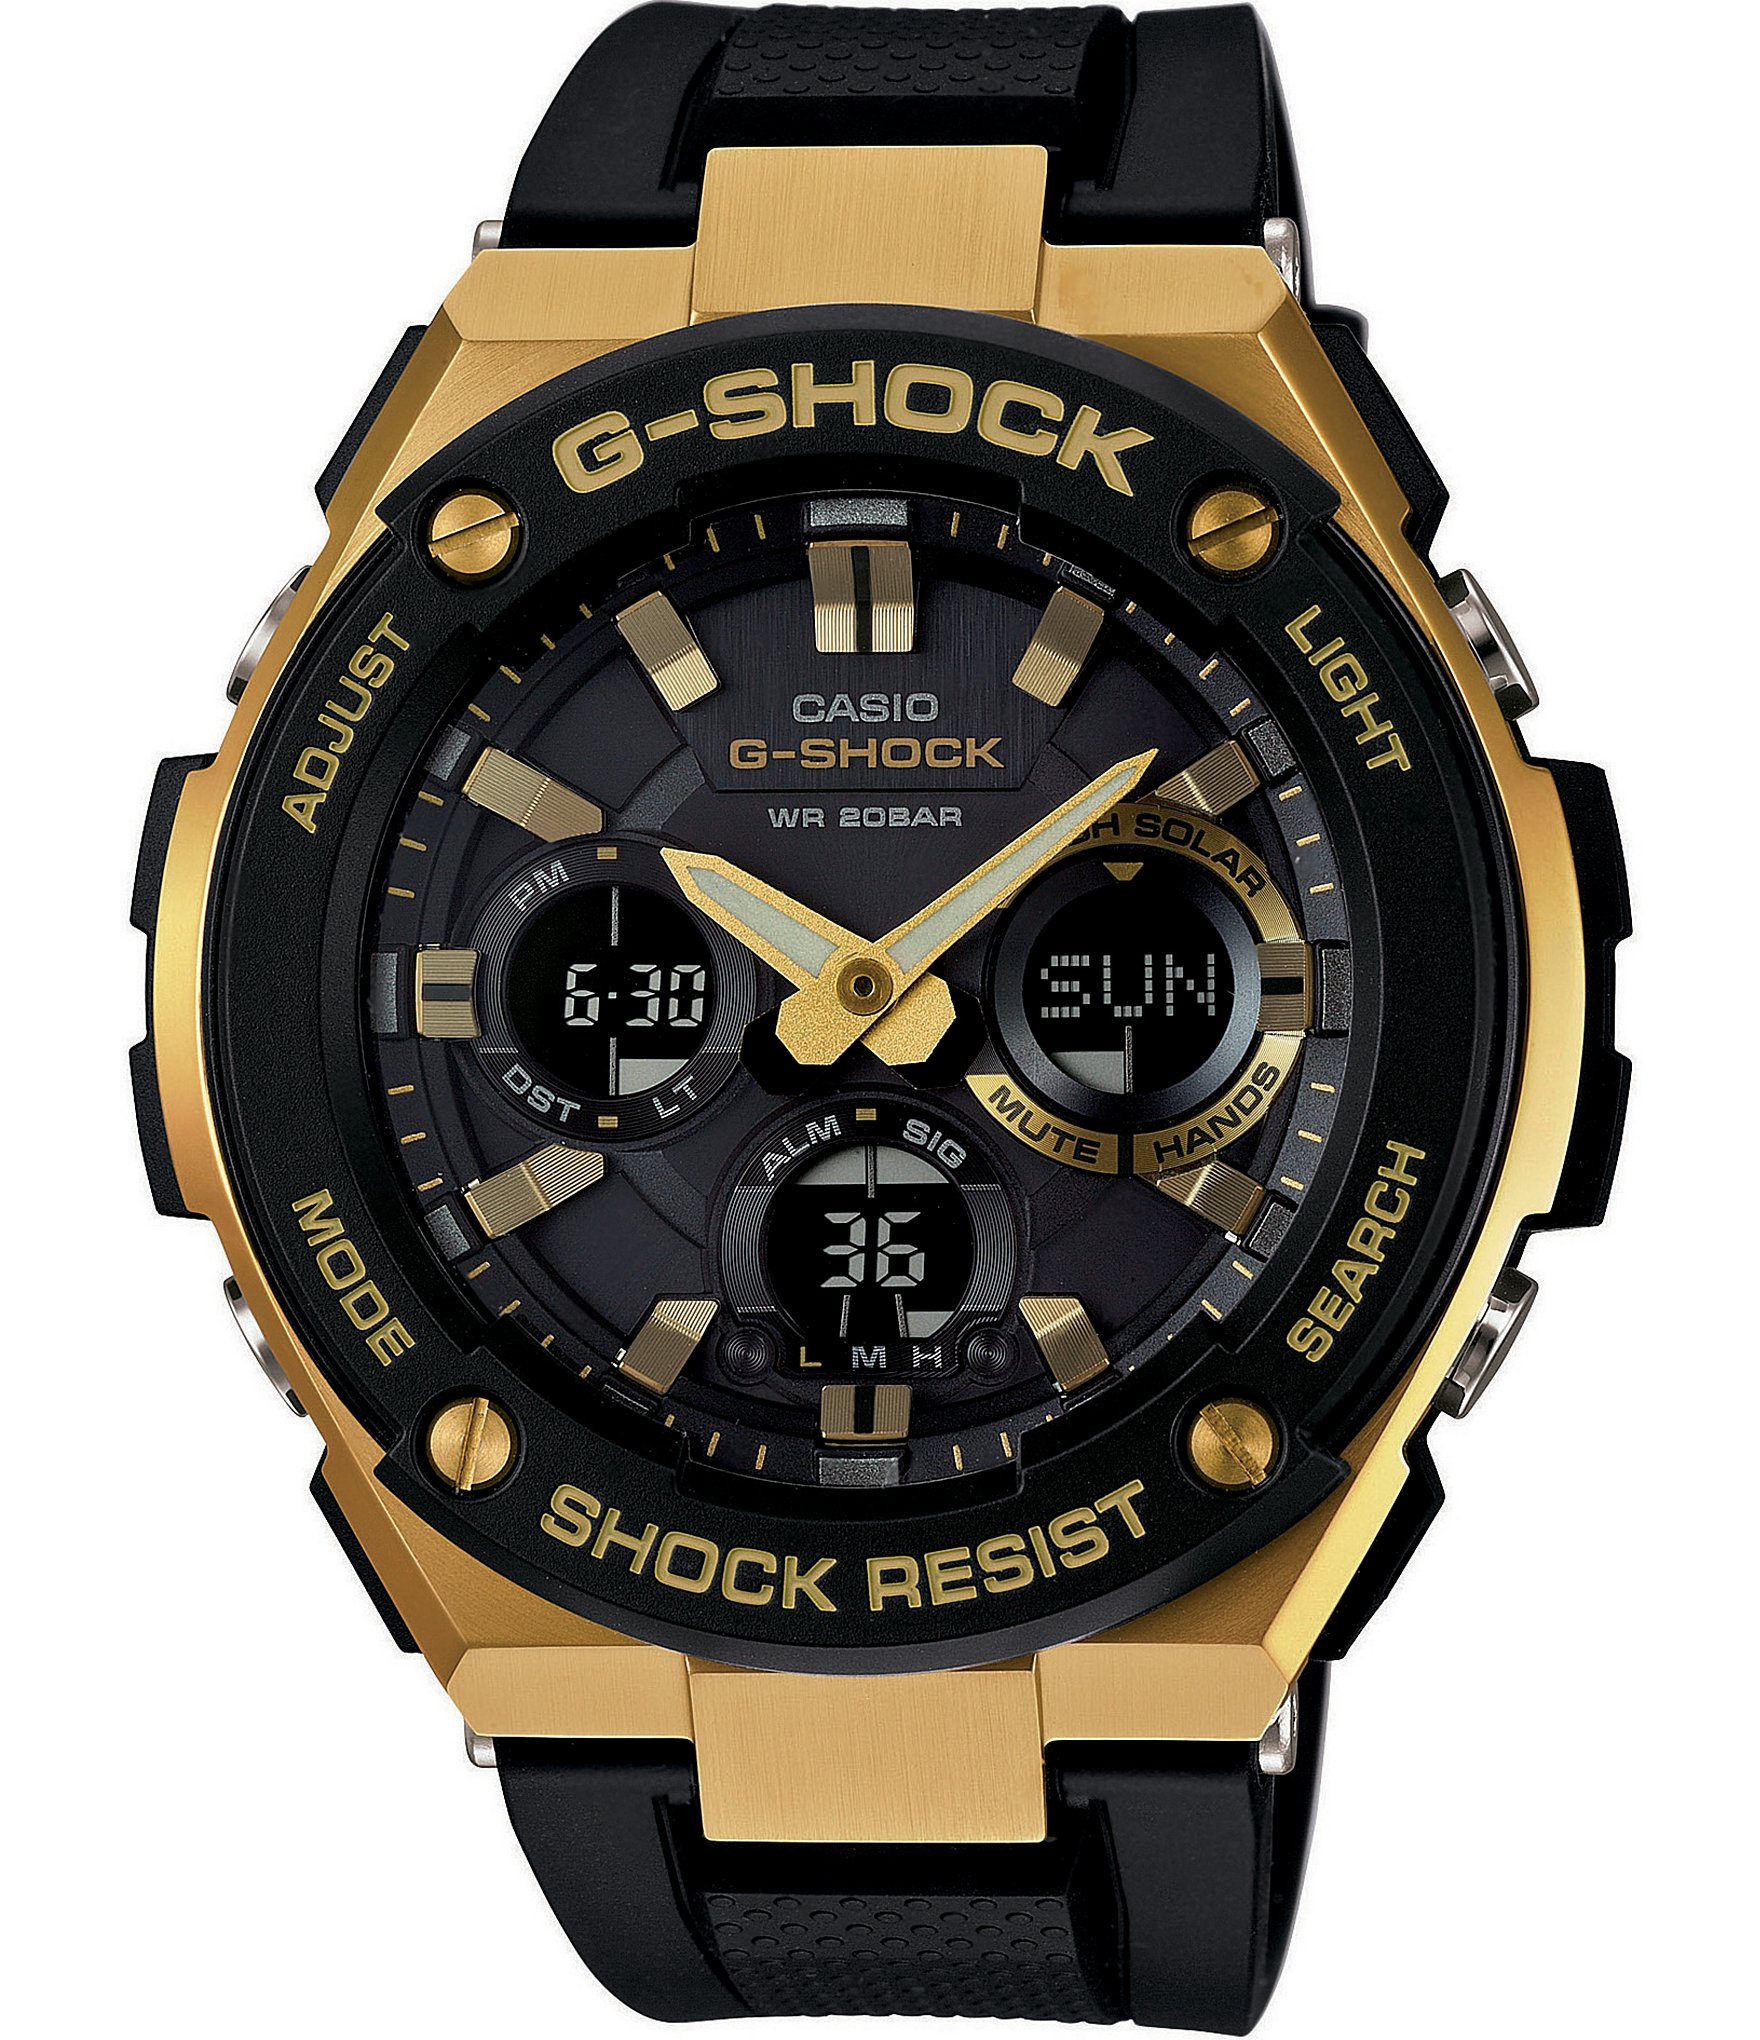 8dd9b2304c1 G-Shock Men s Watches